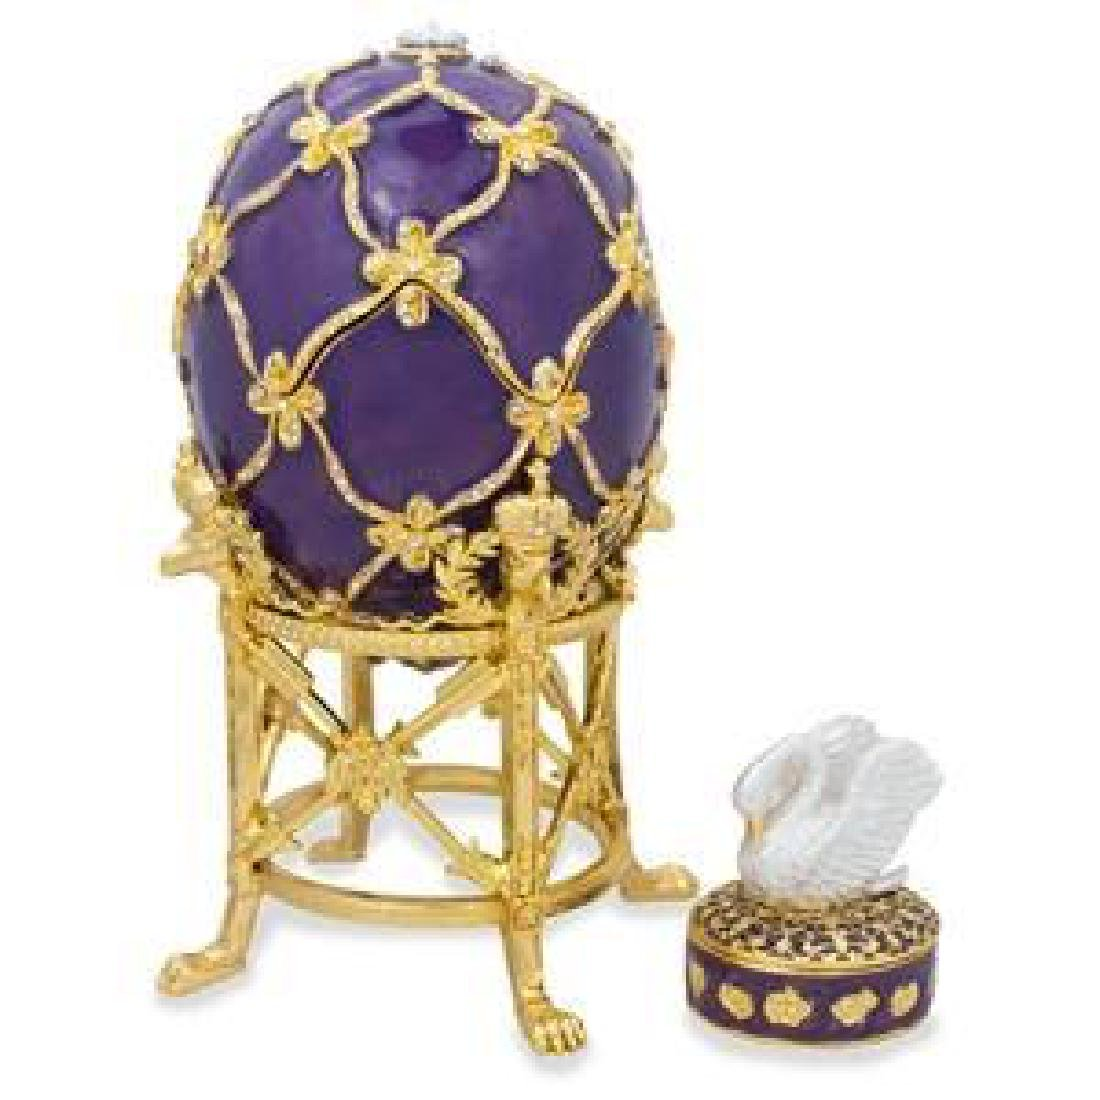 1906 The Swan Faberge Egg